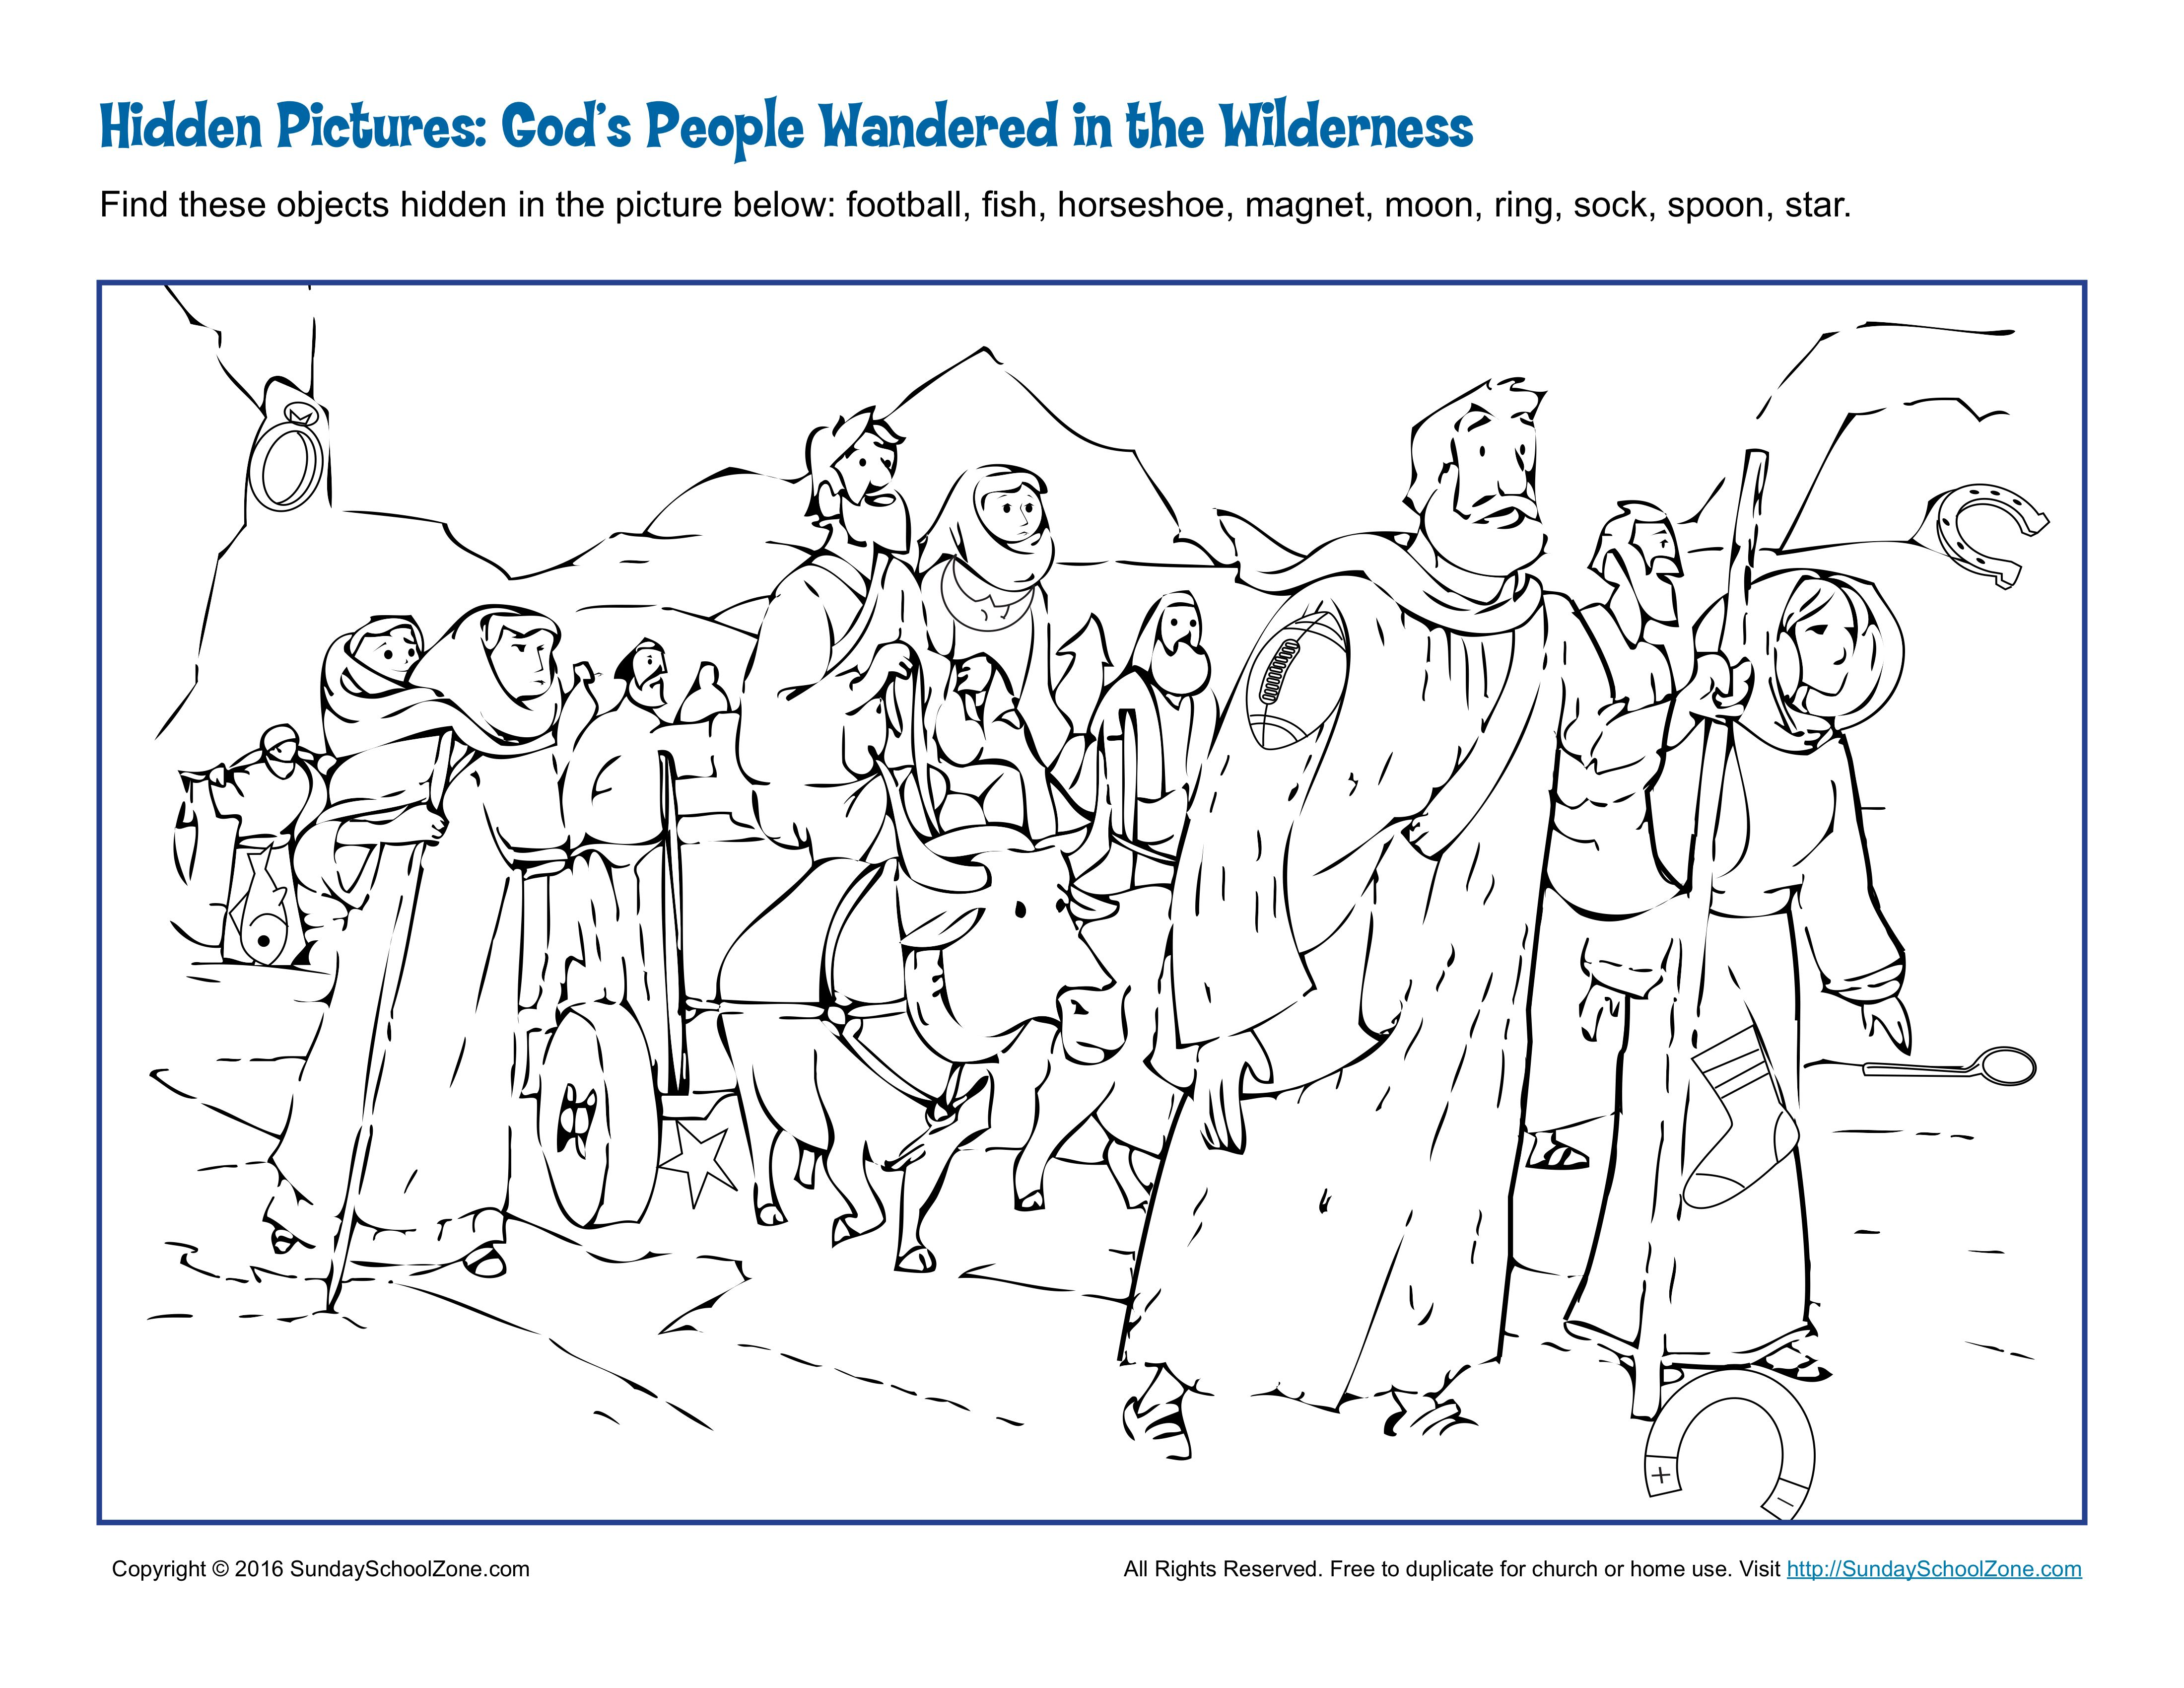 Coloring pages quail from heaven - God S People Wandered In The Wilderness Hidden Pictures Bible Coloring Pageshidden Picturesquailswildernessreligionmoisesdrawings